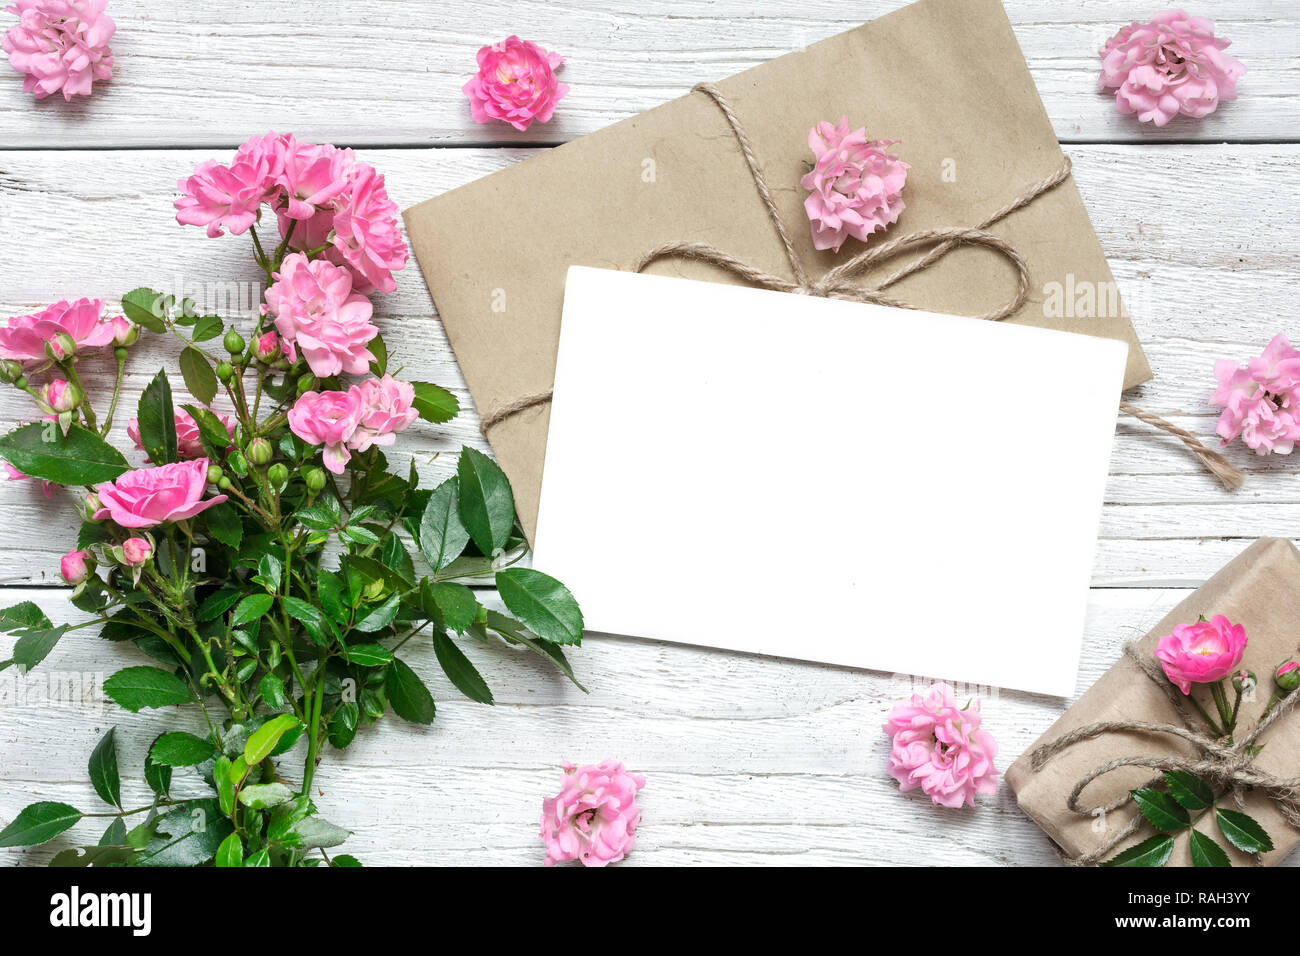 https www alamy com pink rose flowers bouquet with blank greeting card and gift box holiday background wedding invitation top view flat lay image230257663 html